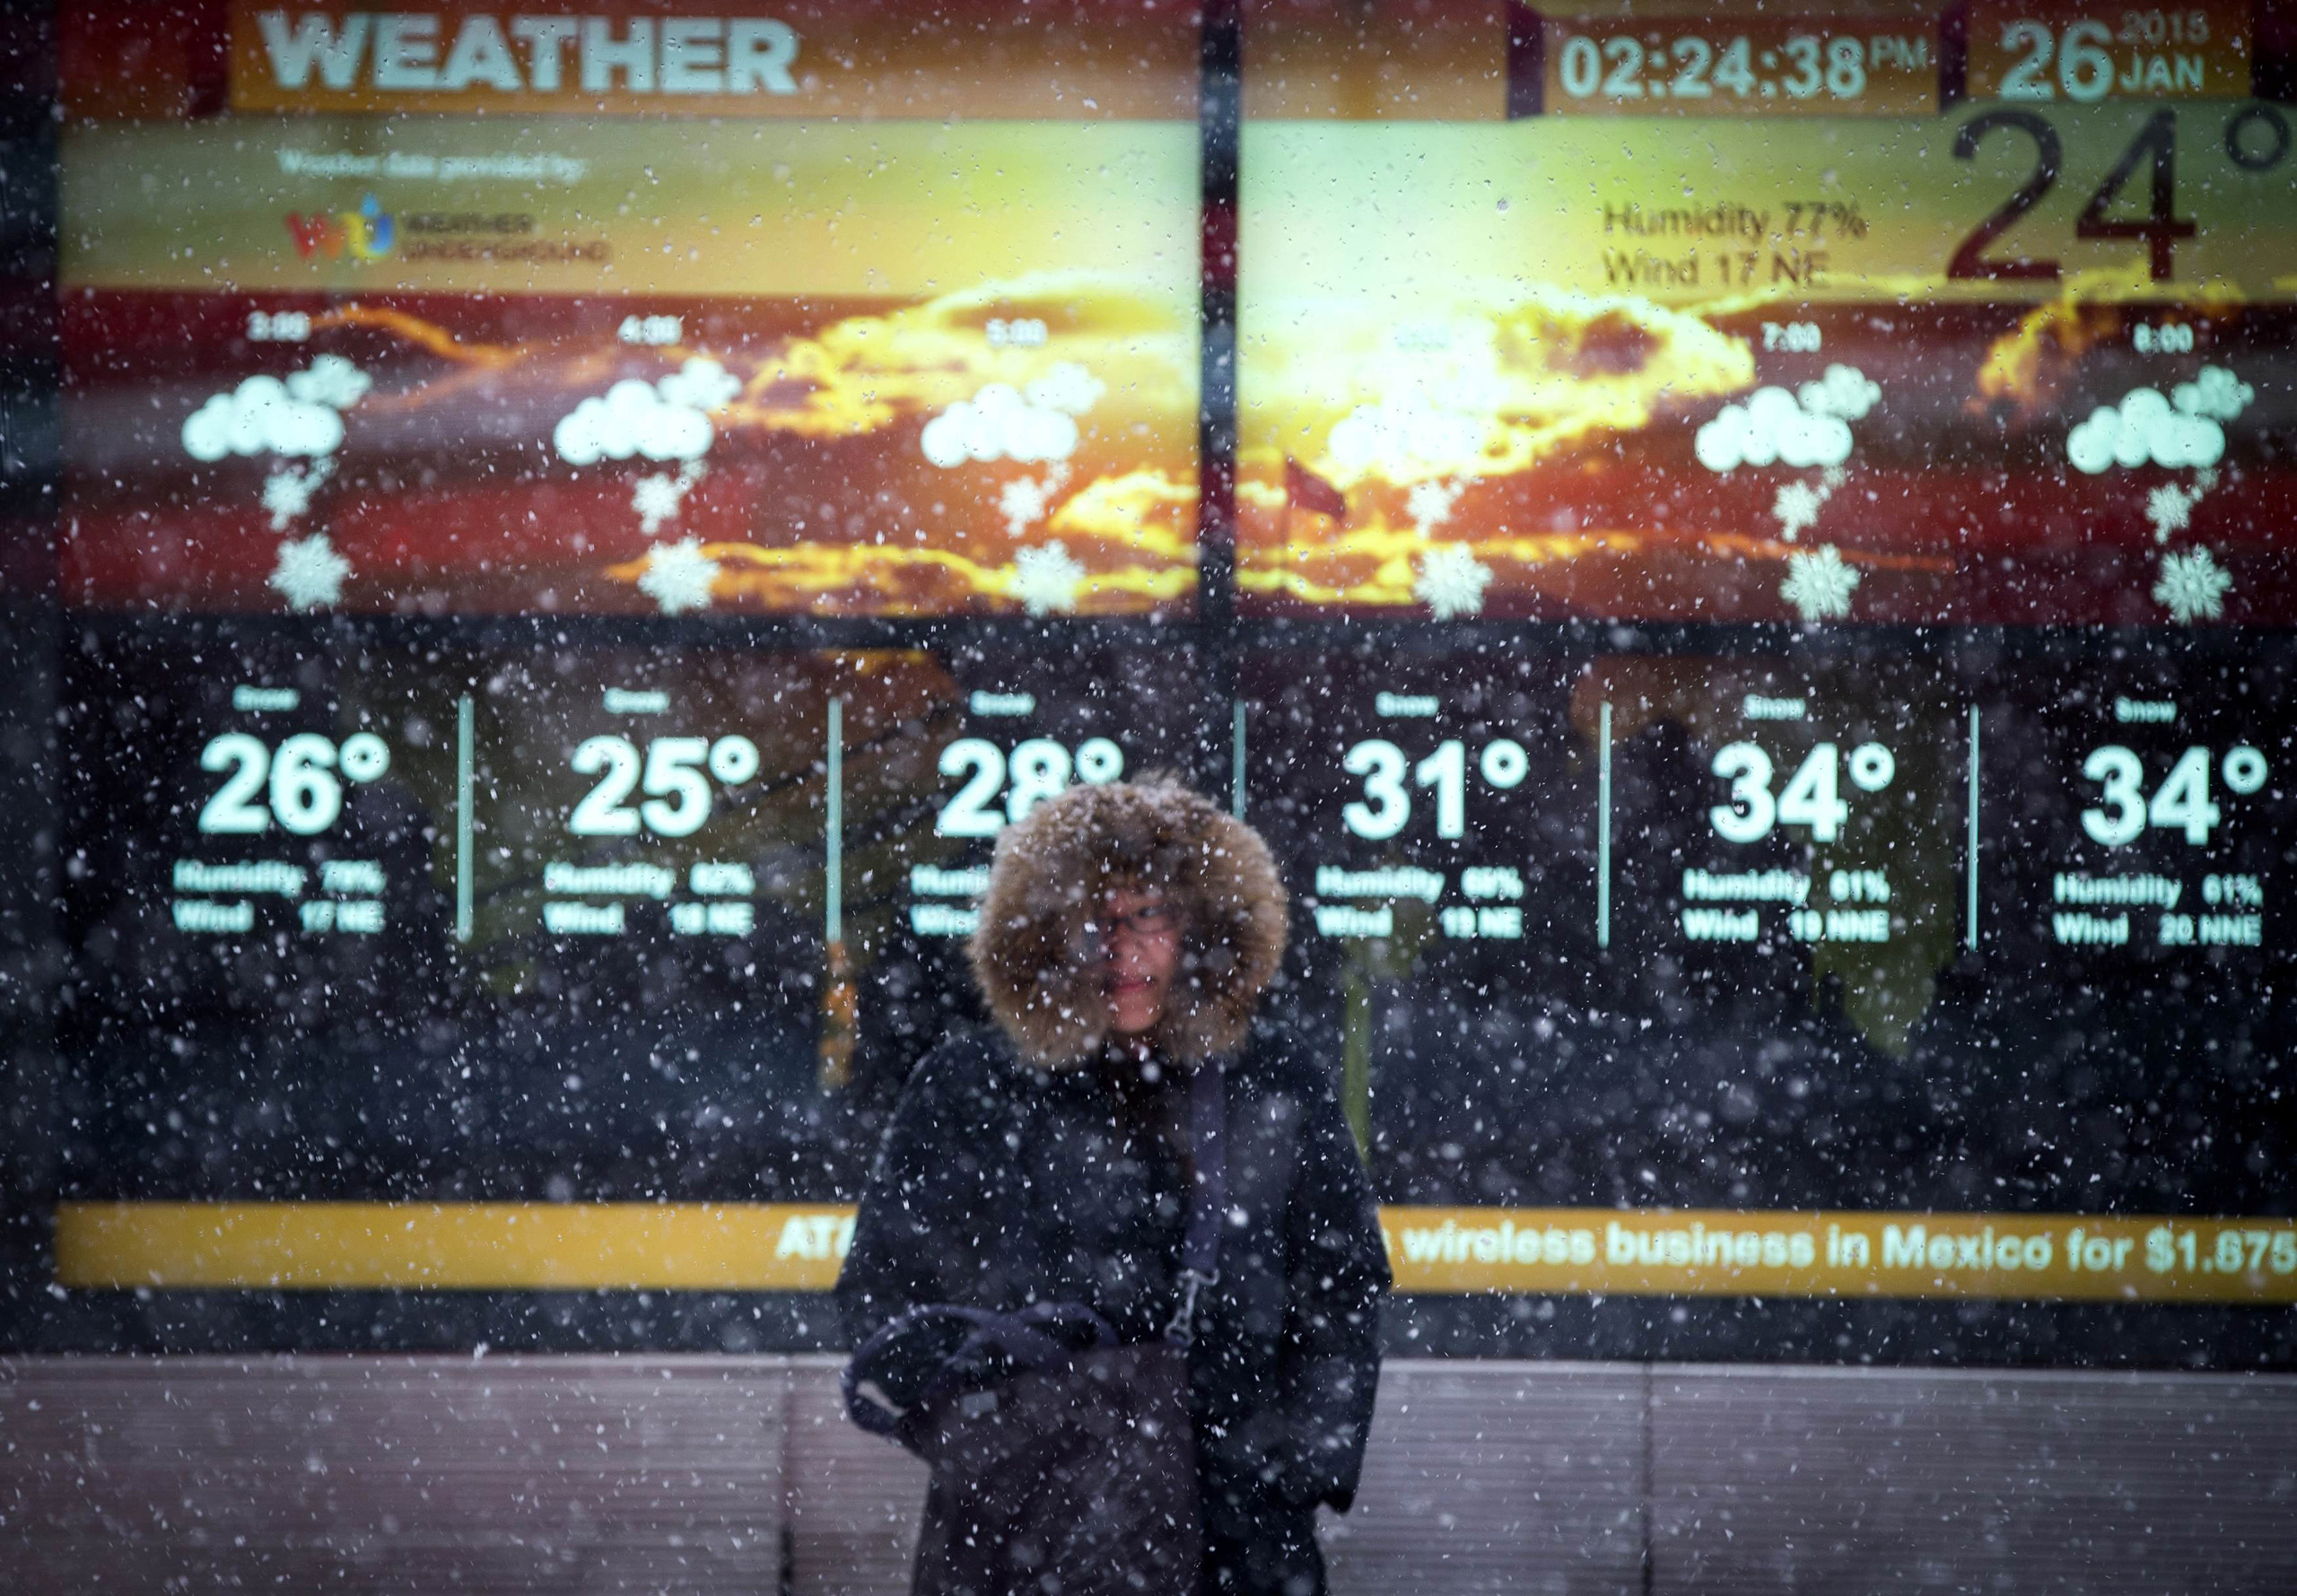 A woman stands in falling snow in front of an electronic sign displaying the weather forecast in Times Square in New York City on Jan. 26, 2015.